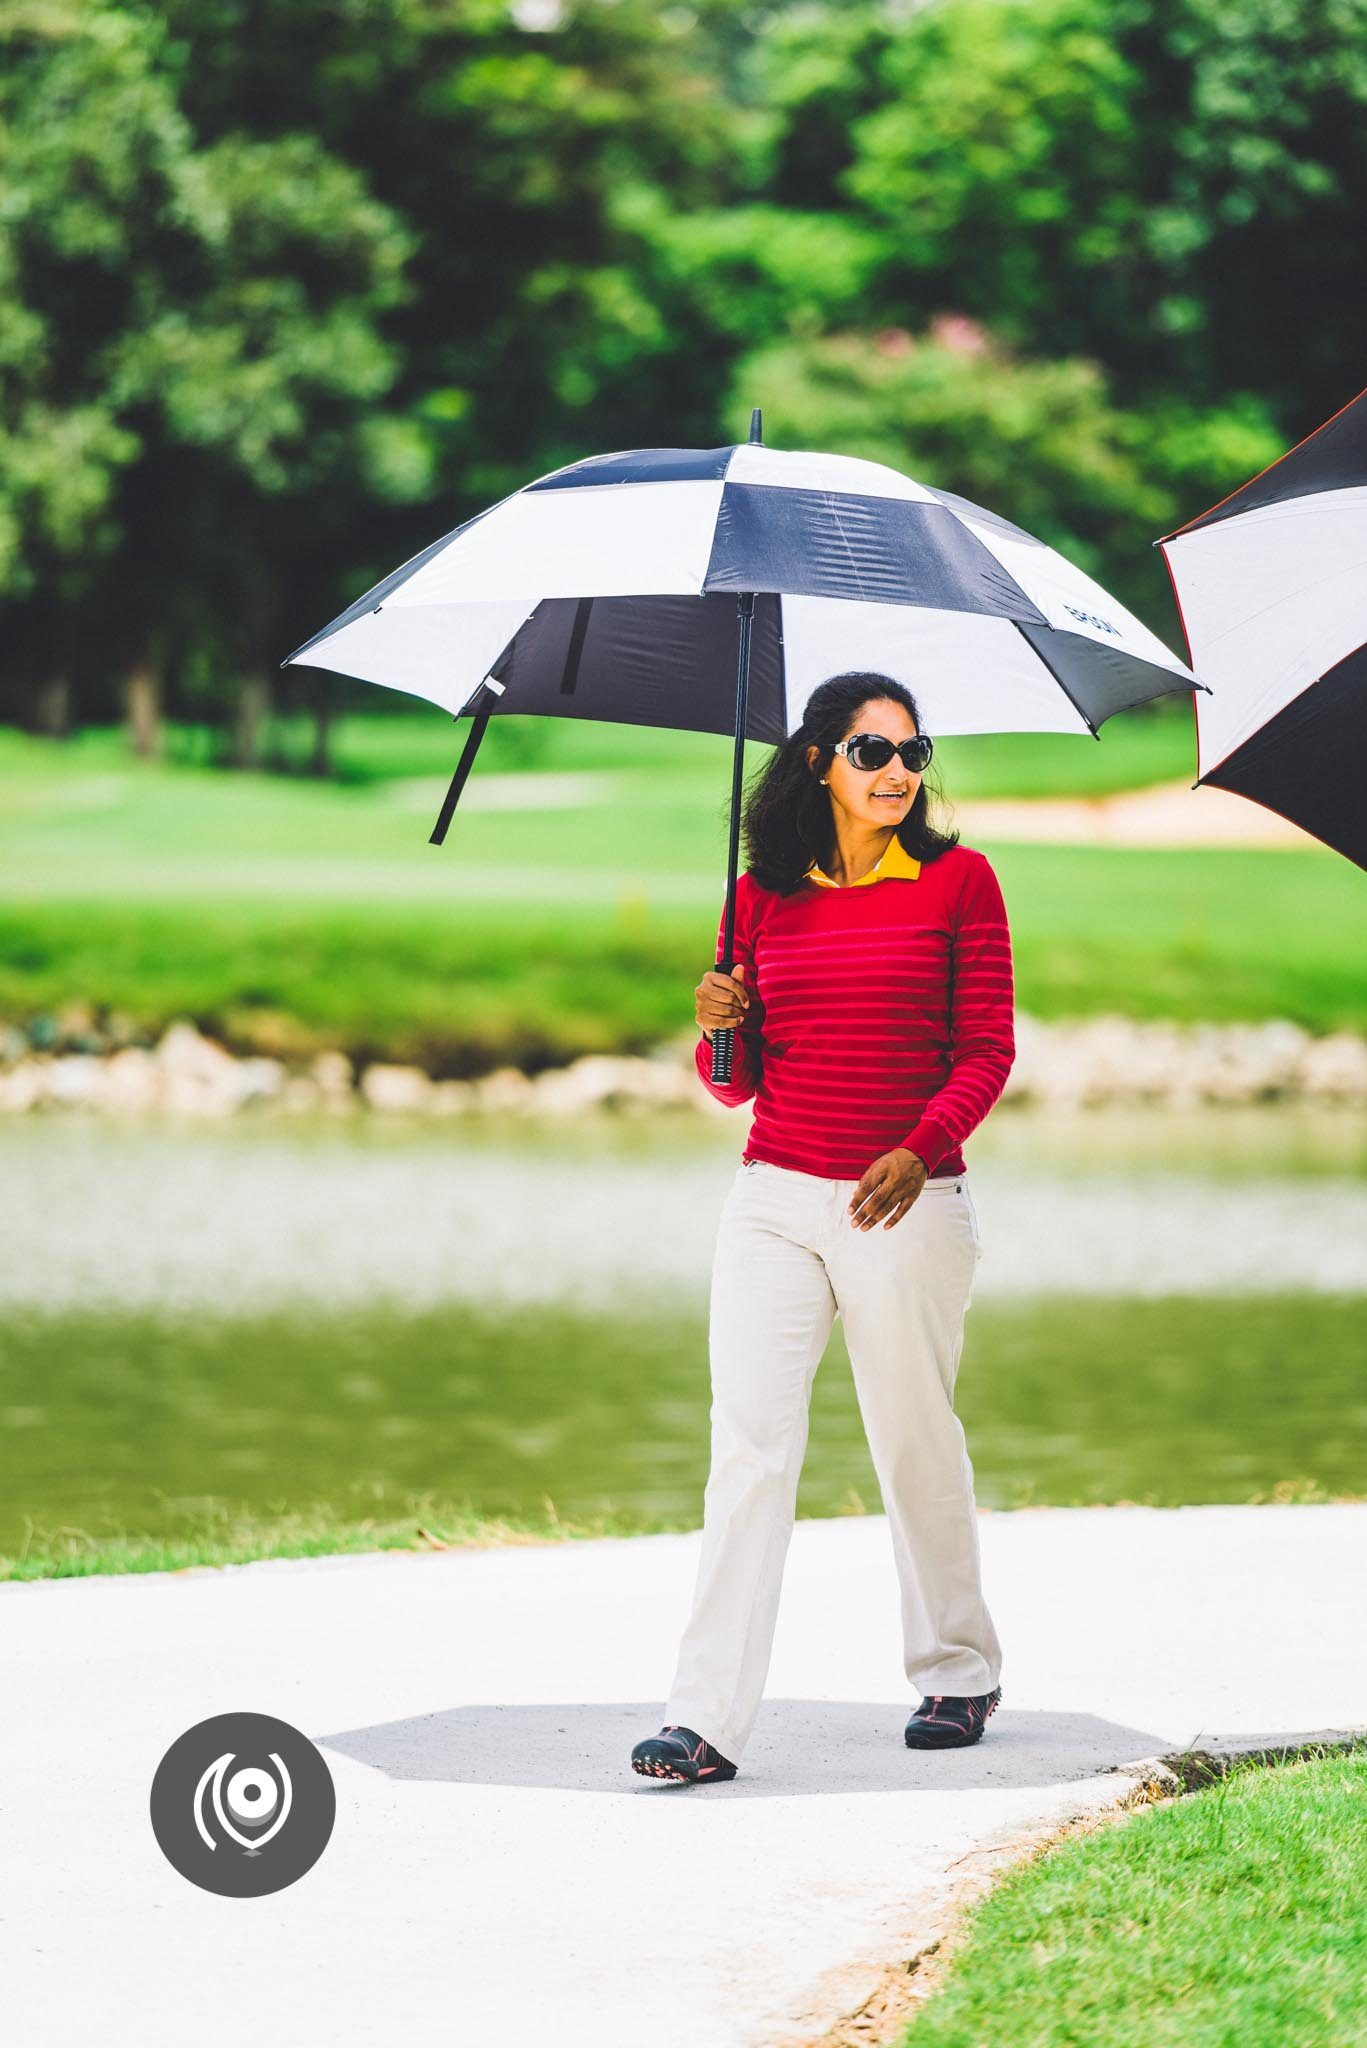 Louis Philippe Professional Golf Cup #LPCup #ProGolf #EyesForLuxury Naina.co Luxury & Lifestyle, Photographer Storyteller, Blogger.